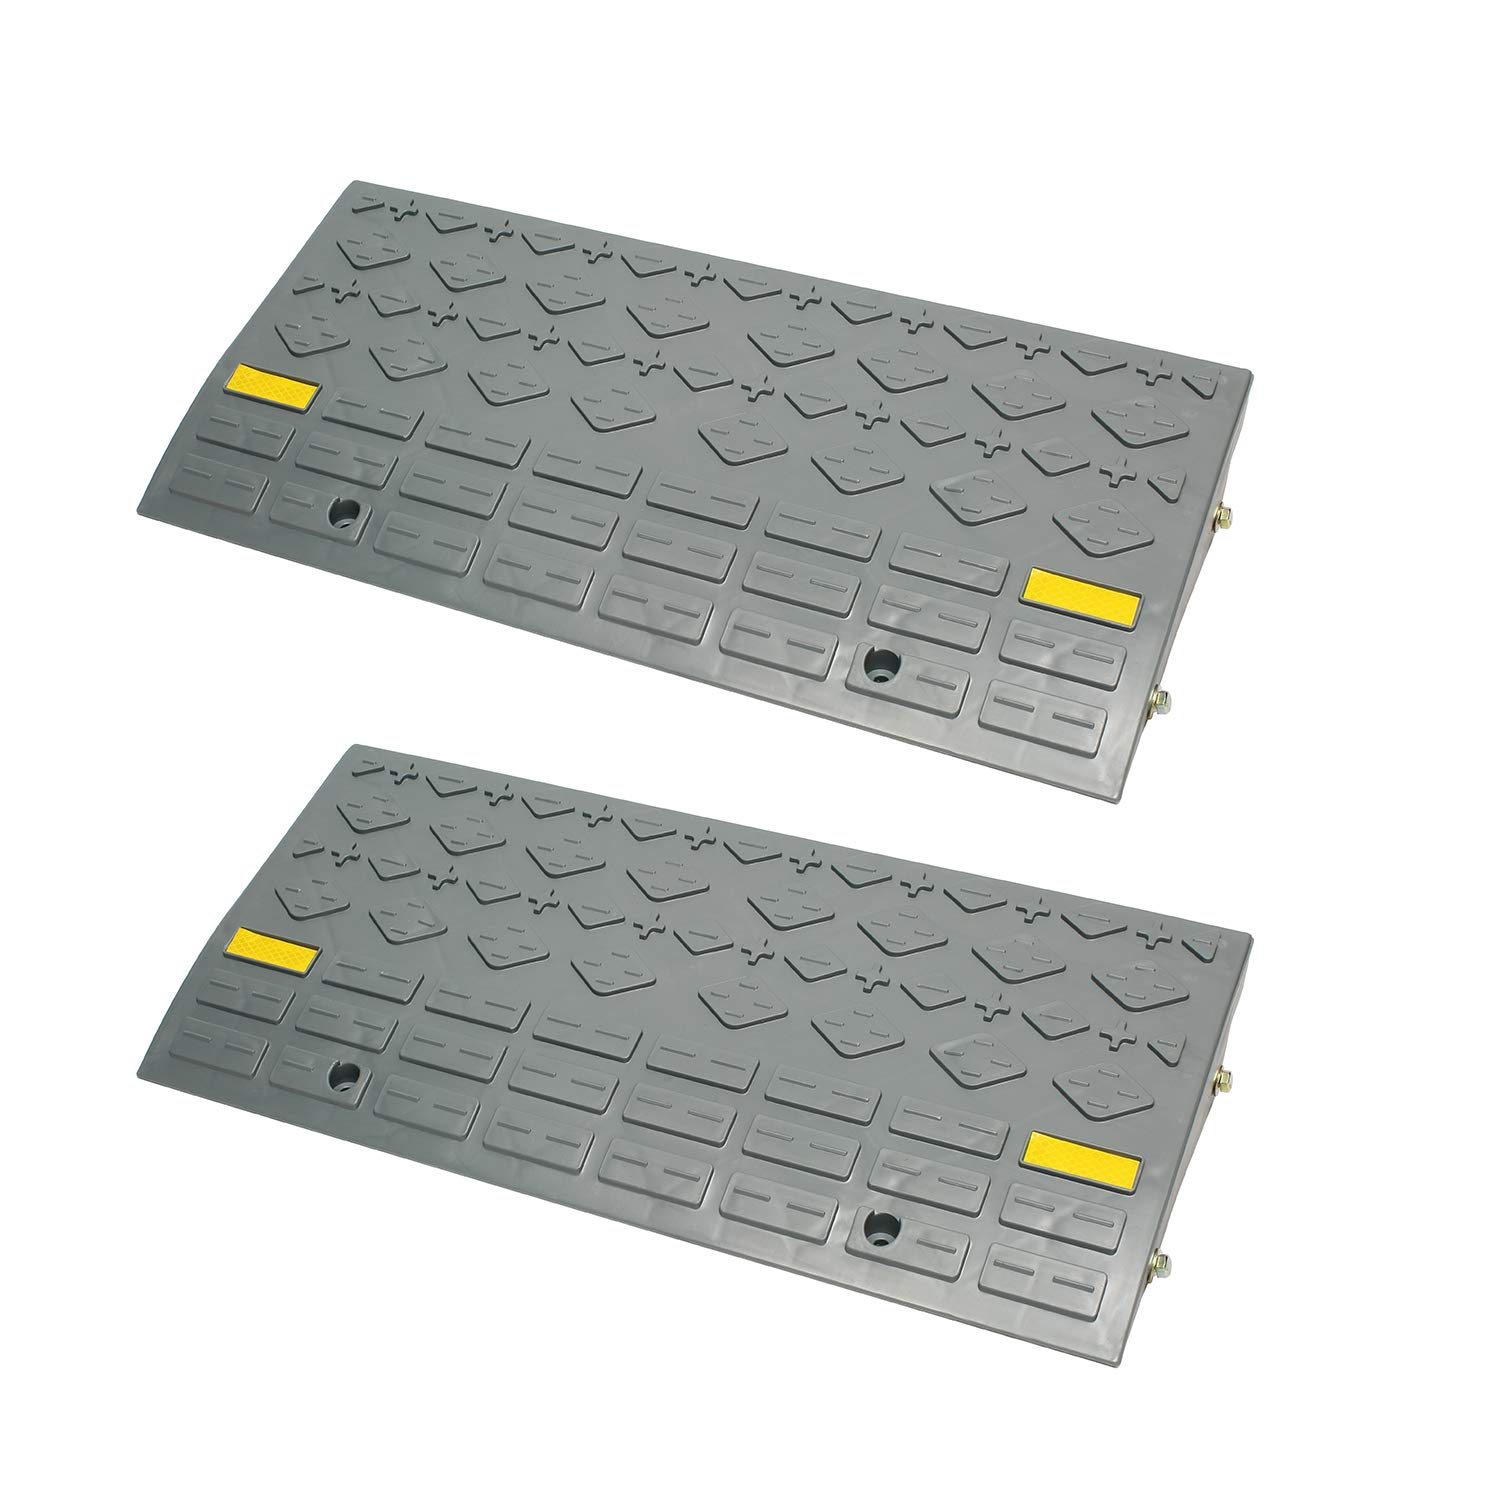 BISupply | Curb Ramps for Driveway Ramps for Low Cars, Car Ramps, Motorcycle Ramp, Threshold Ramp, Loading Ramps 4'' 2pk